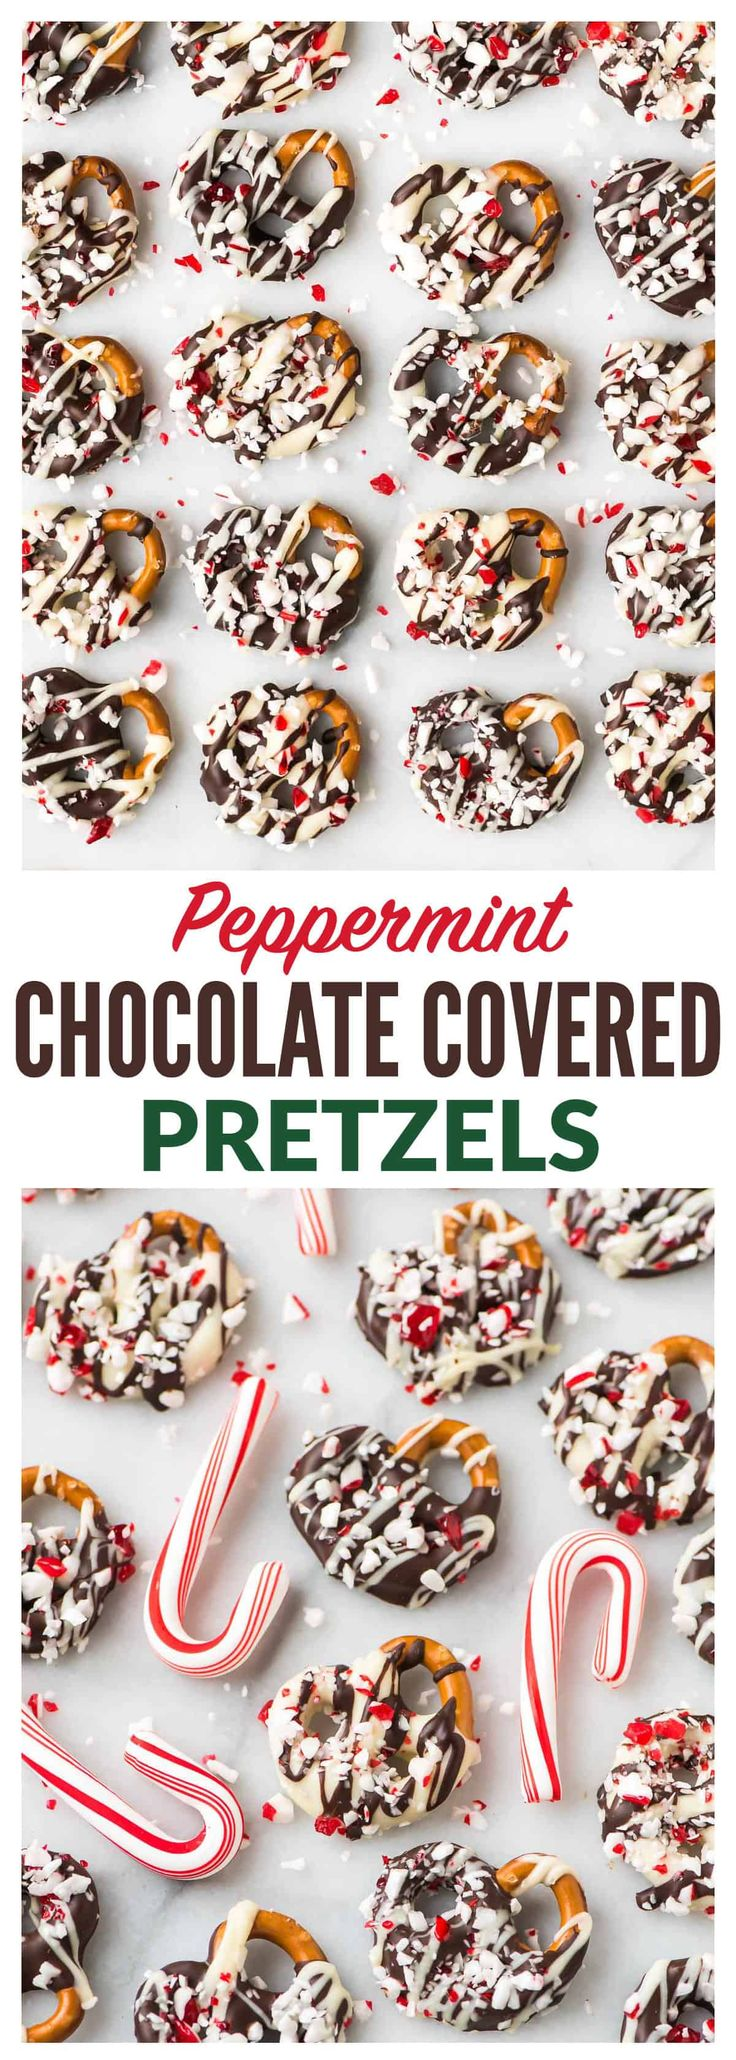 How to make easy Dark or White Chocolate Covered Pretzels with Peppermint. The perfect recipe for Christmas, Thanksgiving, and homemade holiday gifts! Simple, festive, and fun. The sweet-salt combo is completely addictive!